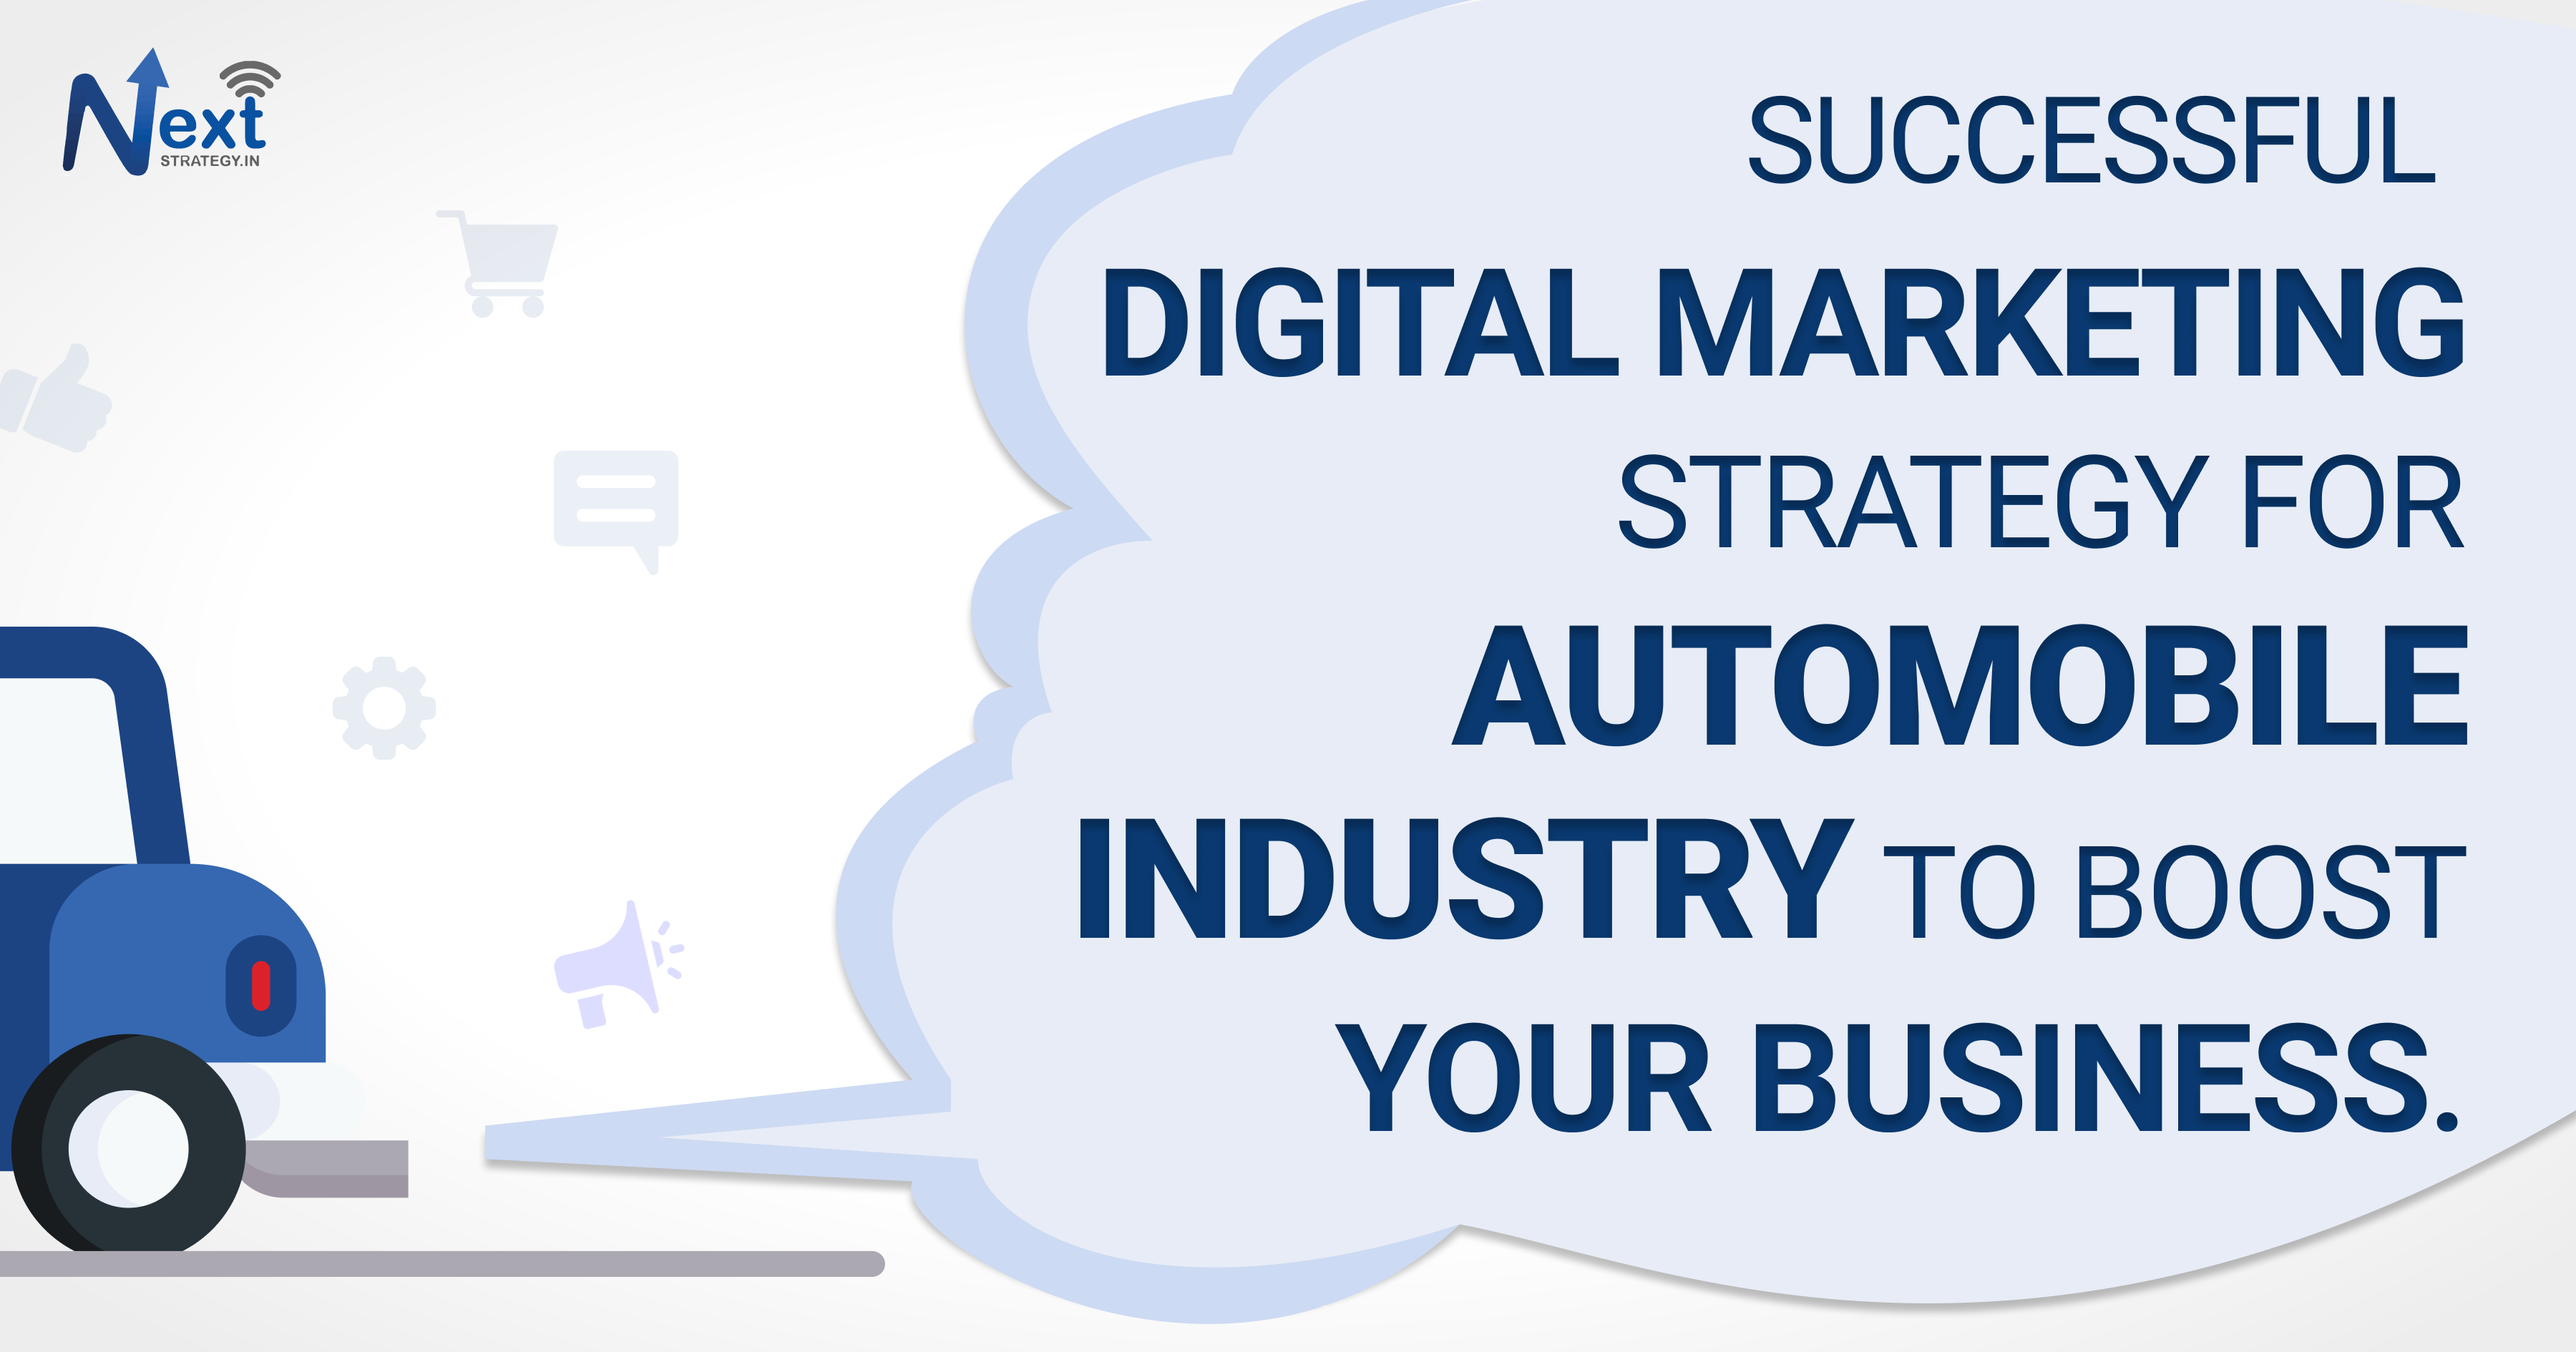 Digital Marketing Strategy for Automobile Industry - Next Strategy.in